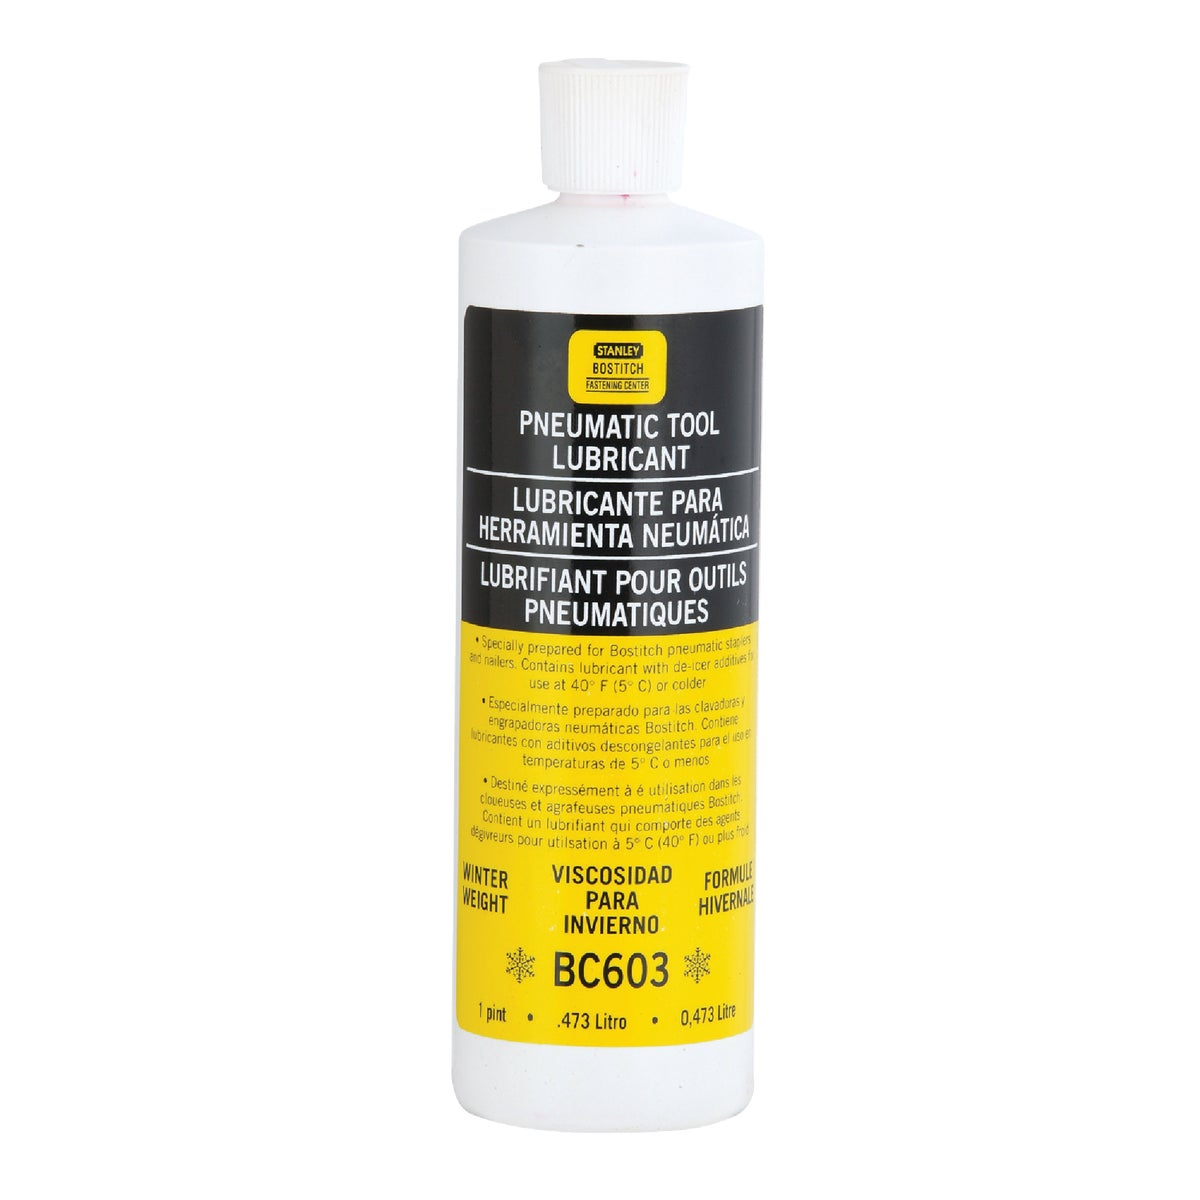 4OZ WINTER PNEUMATIC OIL - WINTEROIL-4OZ by Stanley Bostitch